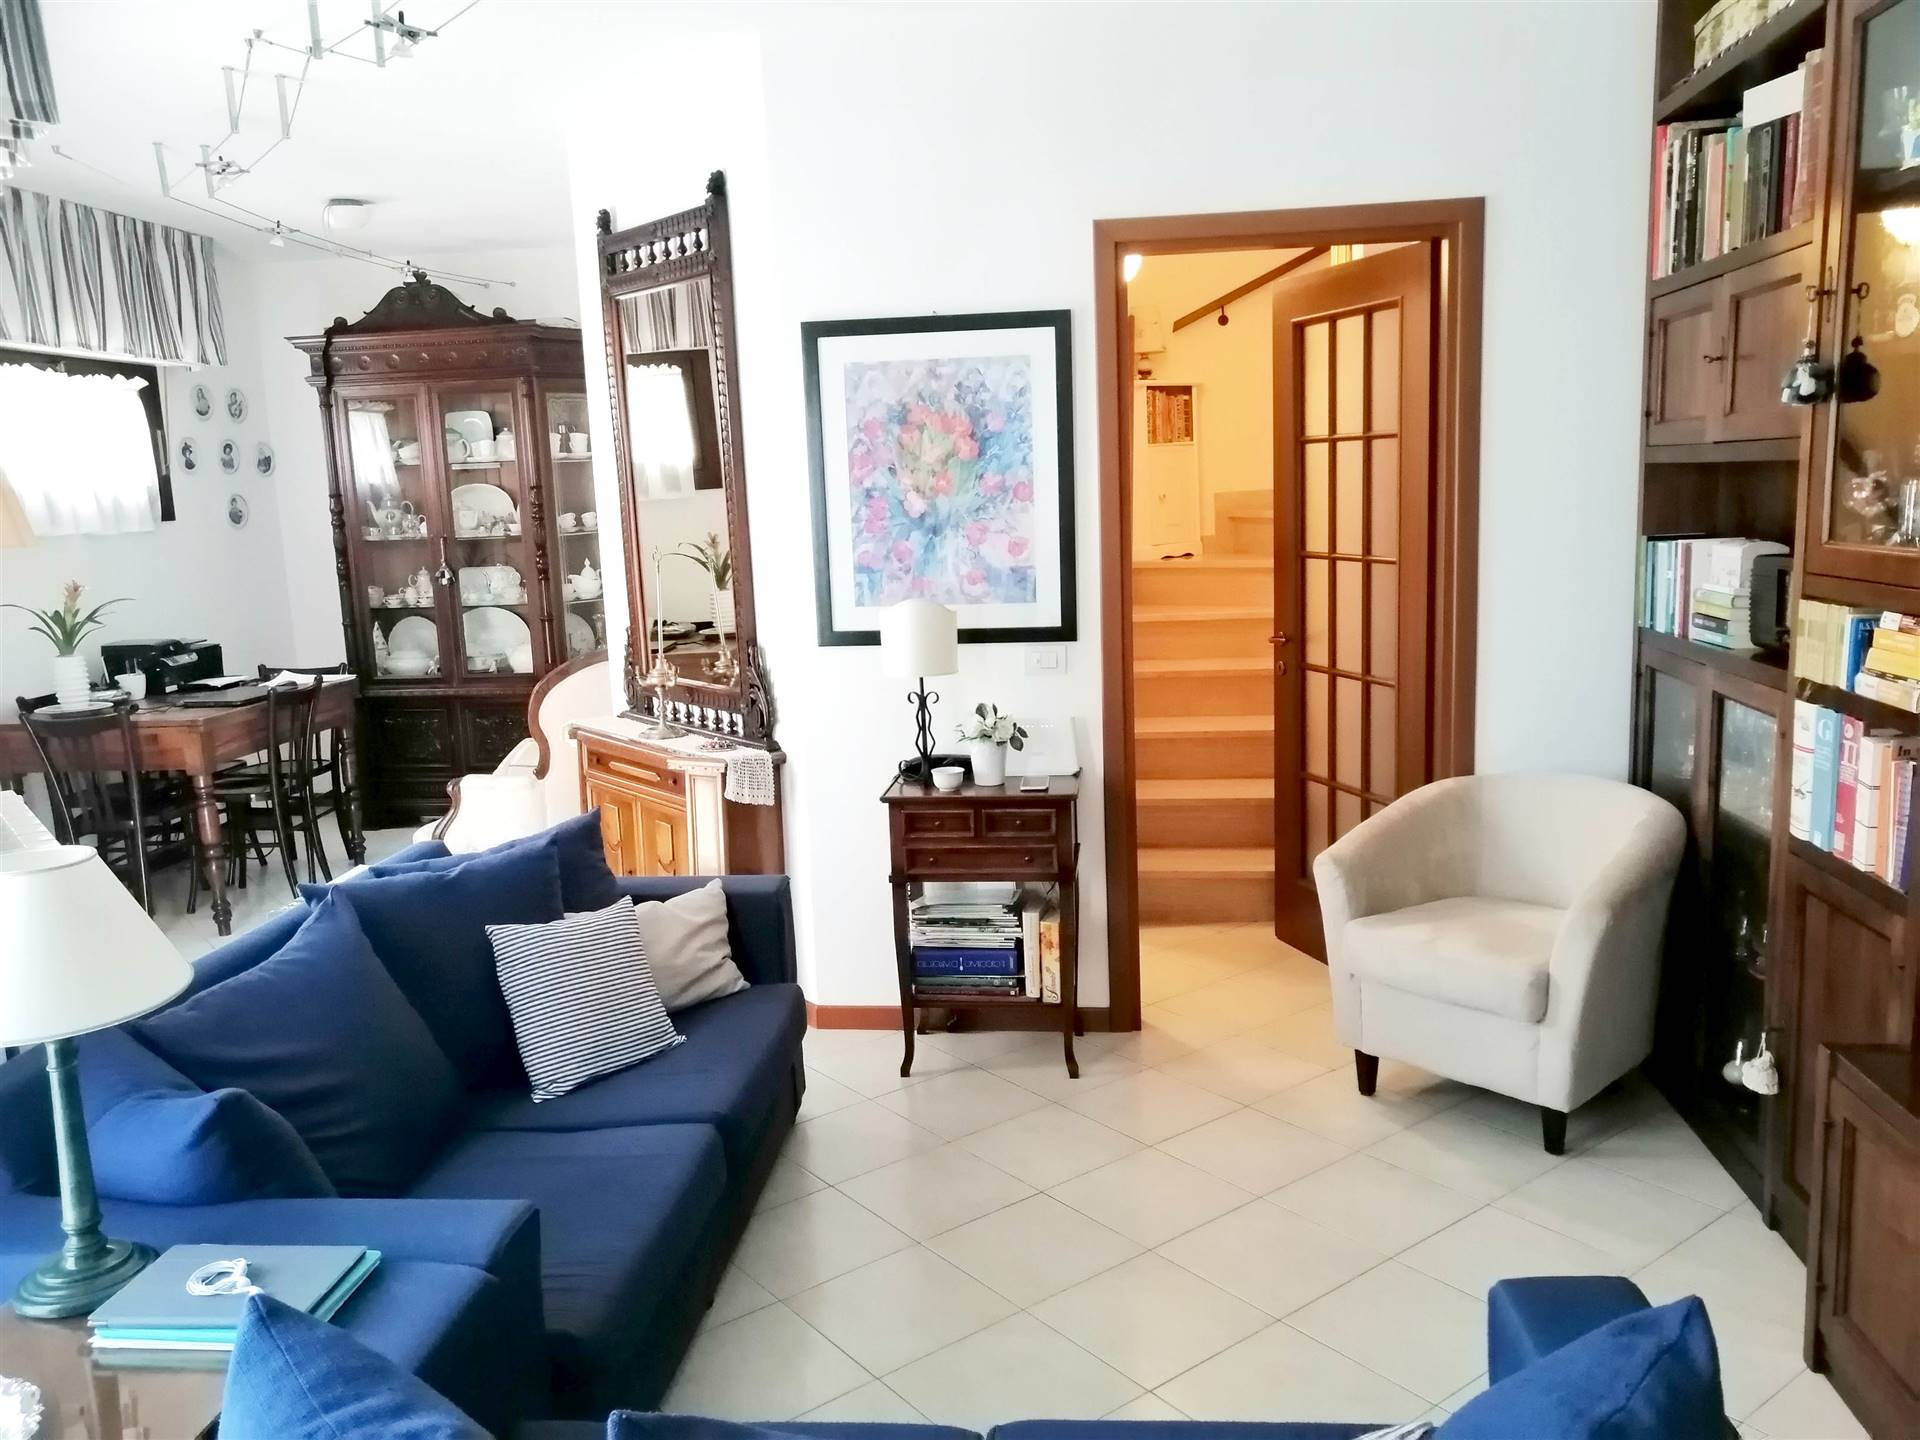 PIAN DELLE FORNACI, SIENA, Apartment for sale, Good condition, Heating Individual heating system, Energetic class: G, Epi: 175 kwh/m2 year, composed by: 4 Rooms, Separate kitchen, , 2 Bedrooms, 2